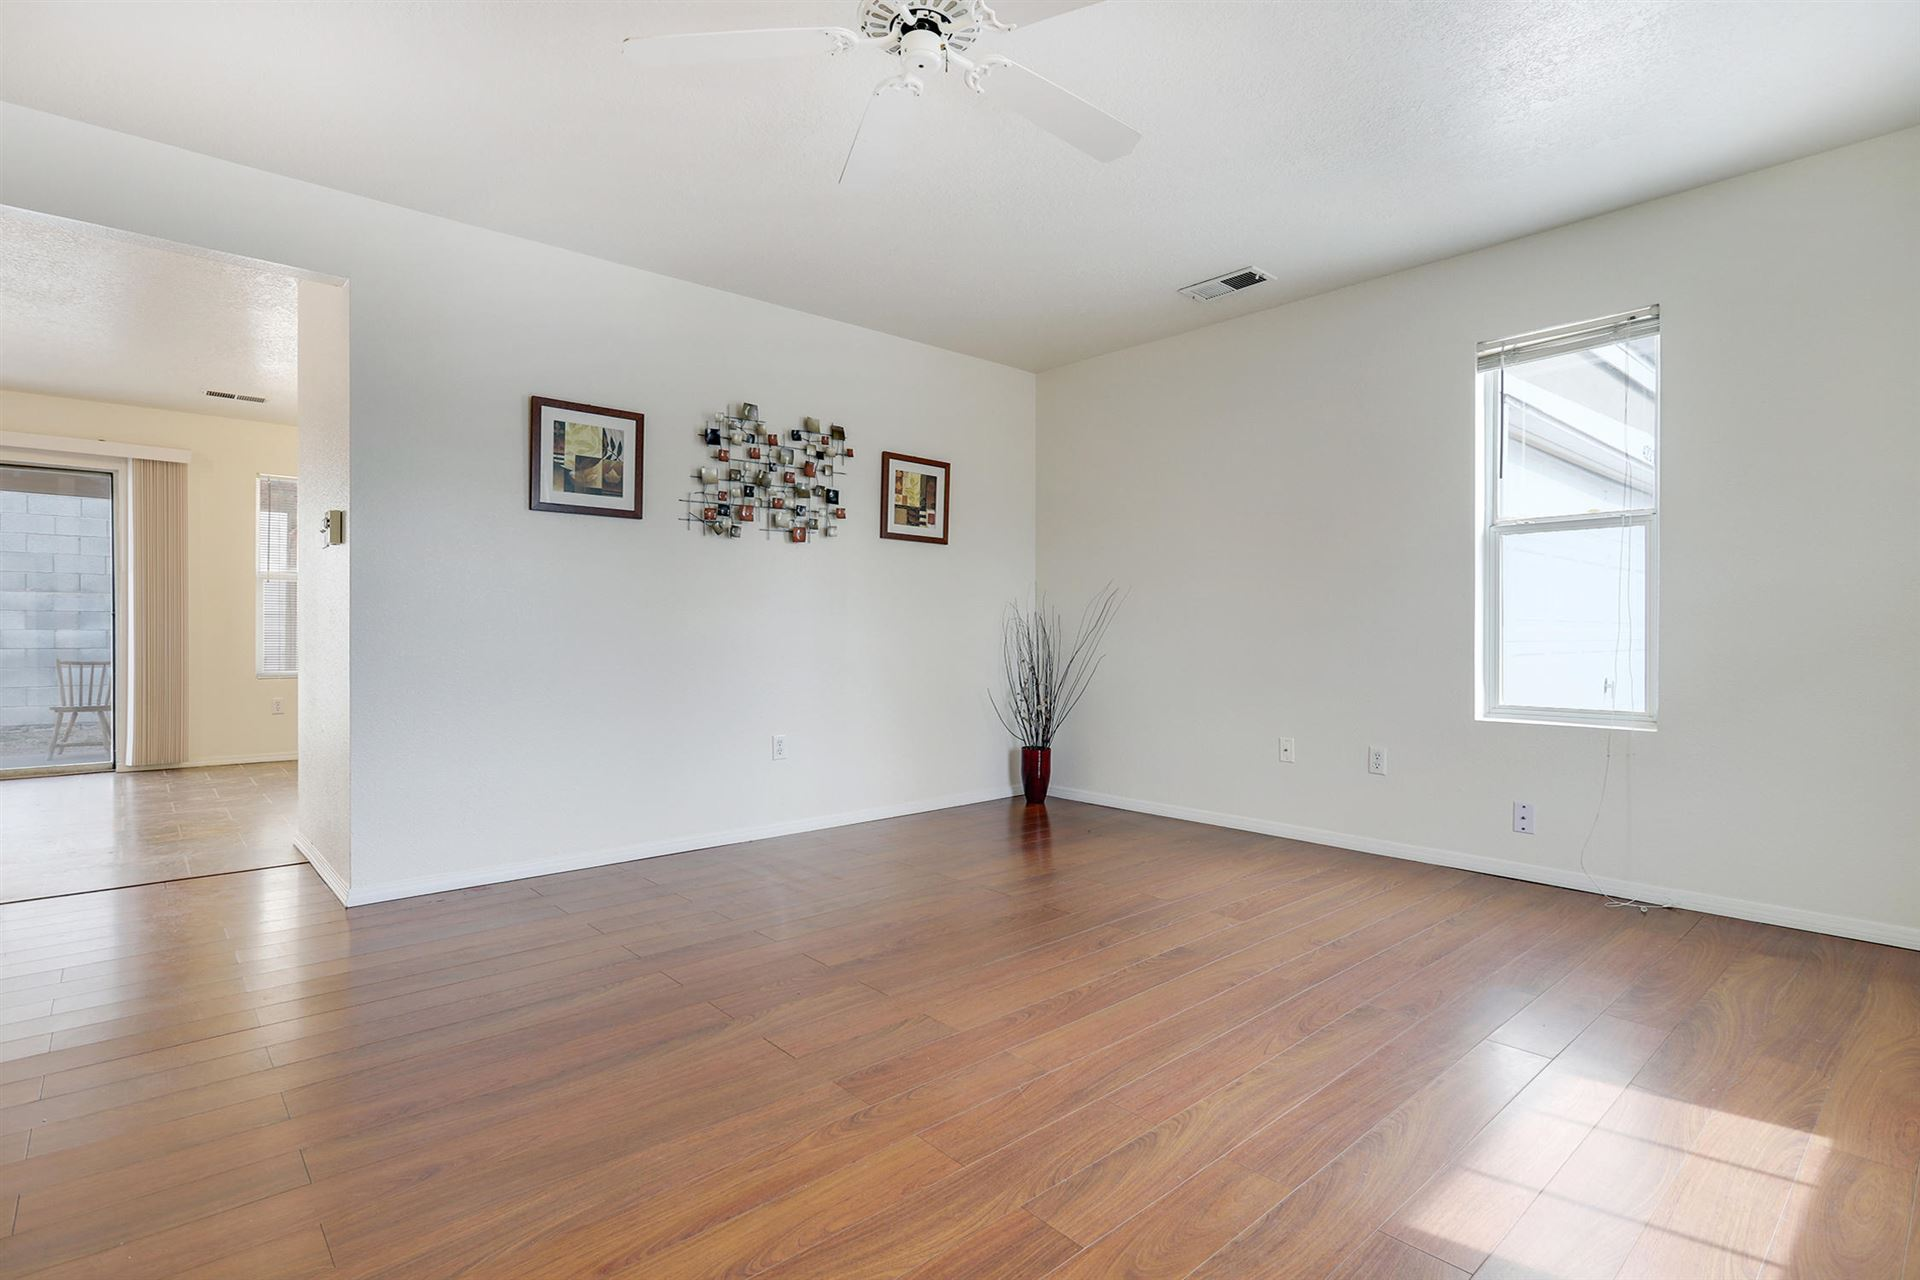 Photo of 4223 DERRY Court NW, Albuquerque, NM 87114 (MLS # 962959)